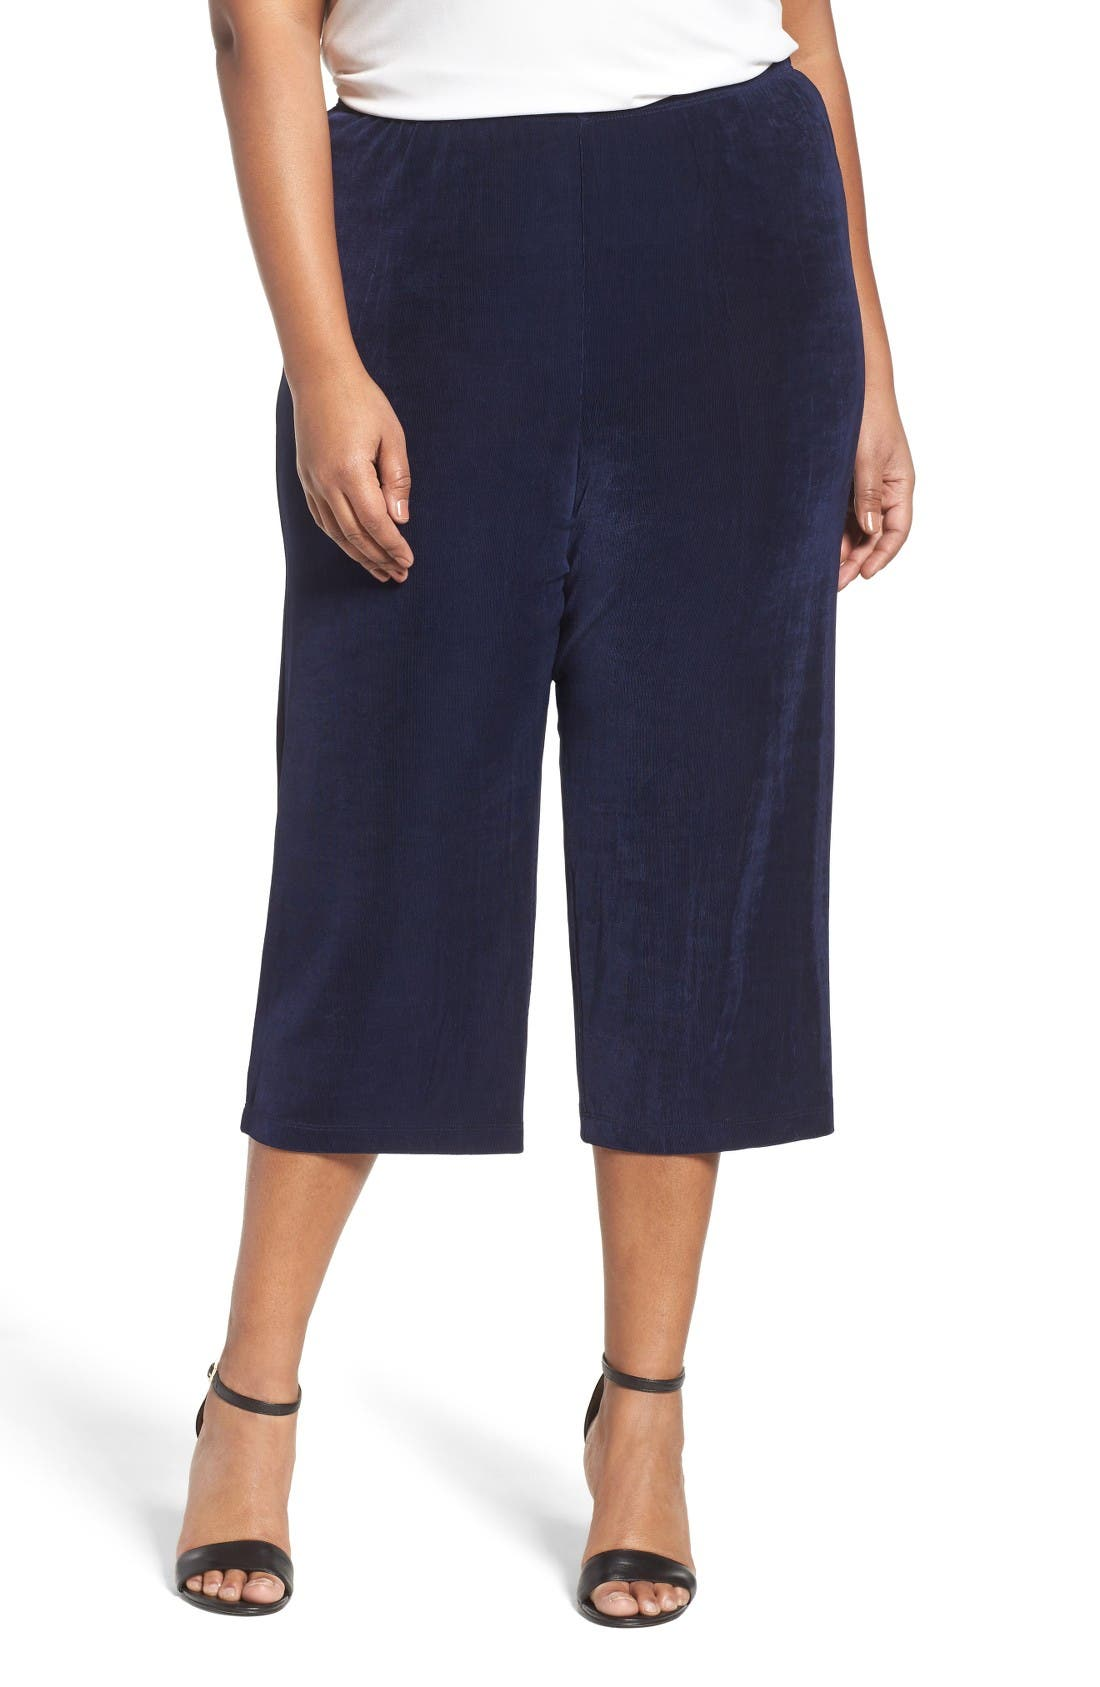 Vikki Vi Stretch Knit Crop Pants (Plus Size)